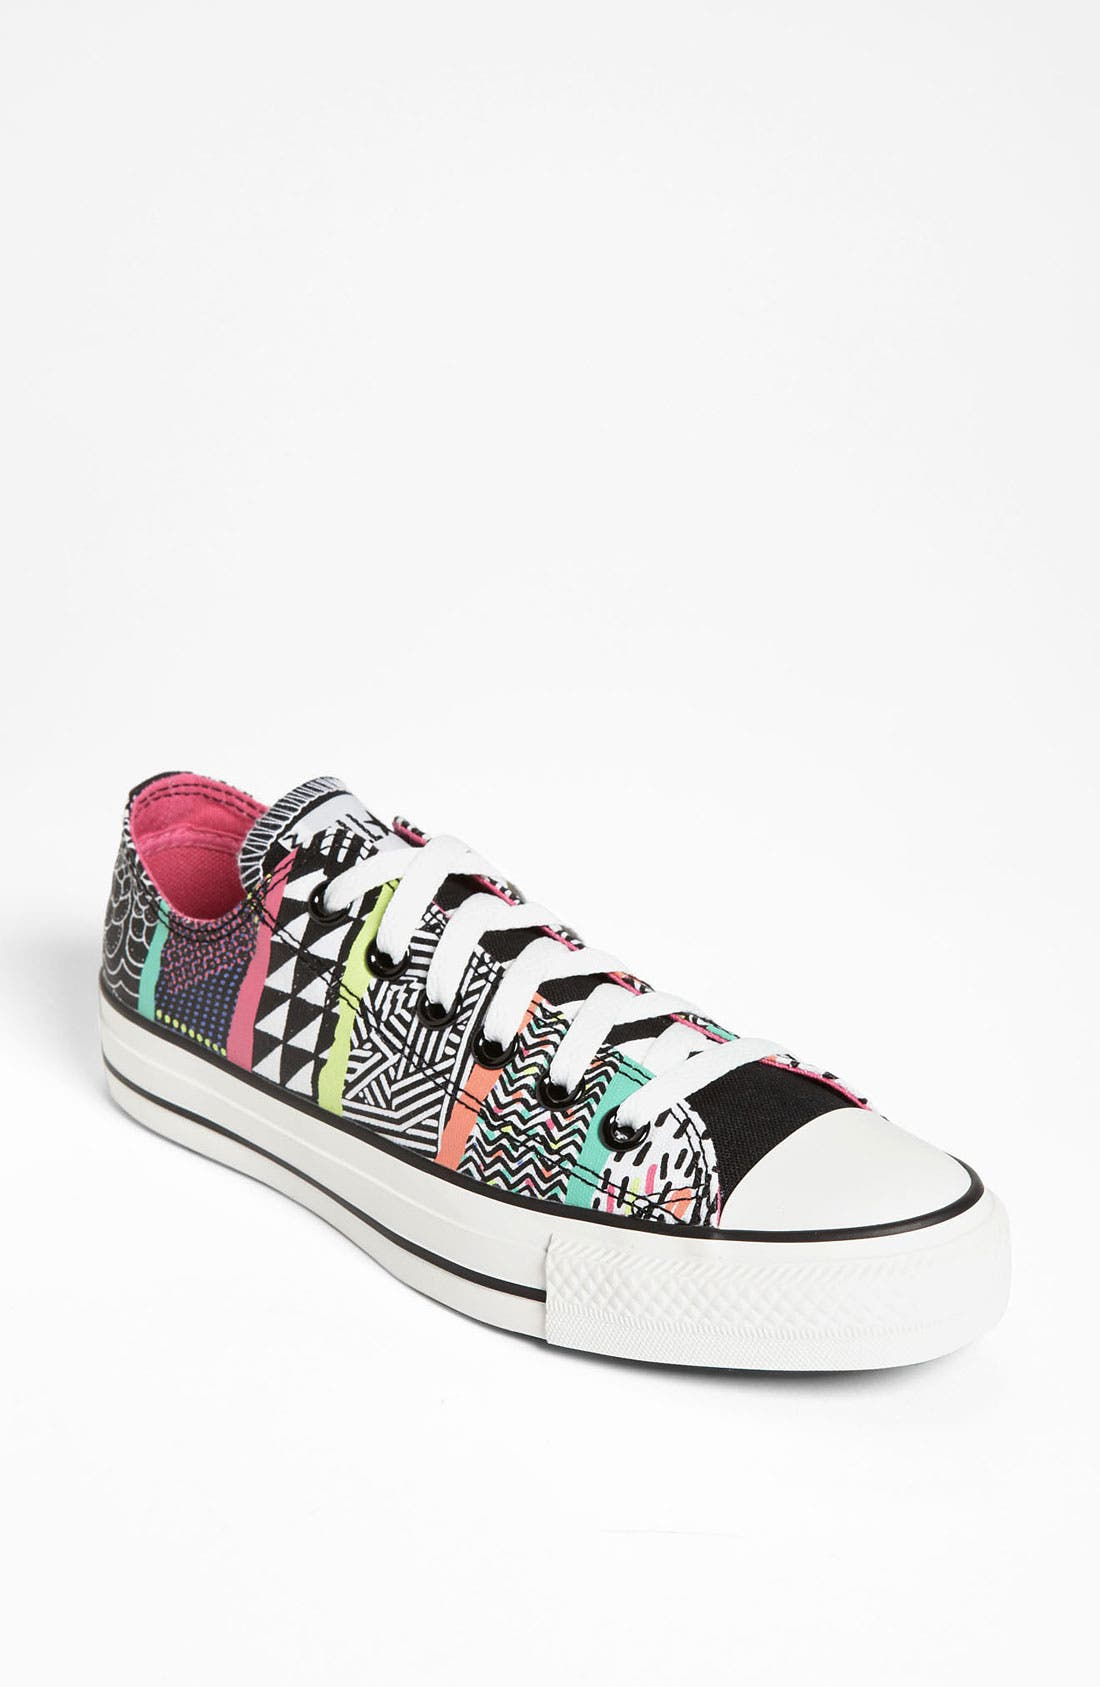 Alternate Image 1 Selected - Converse Chuck Taylor® 'All Star® Multi Print' Sneaker (Women)